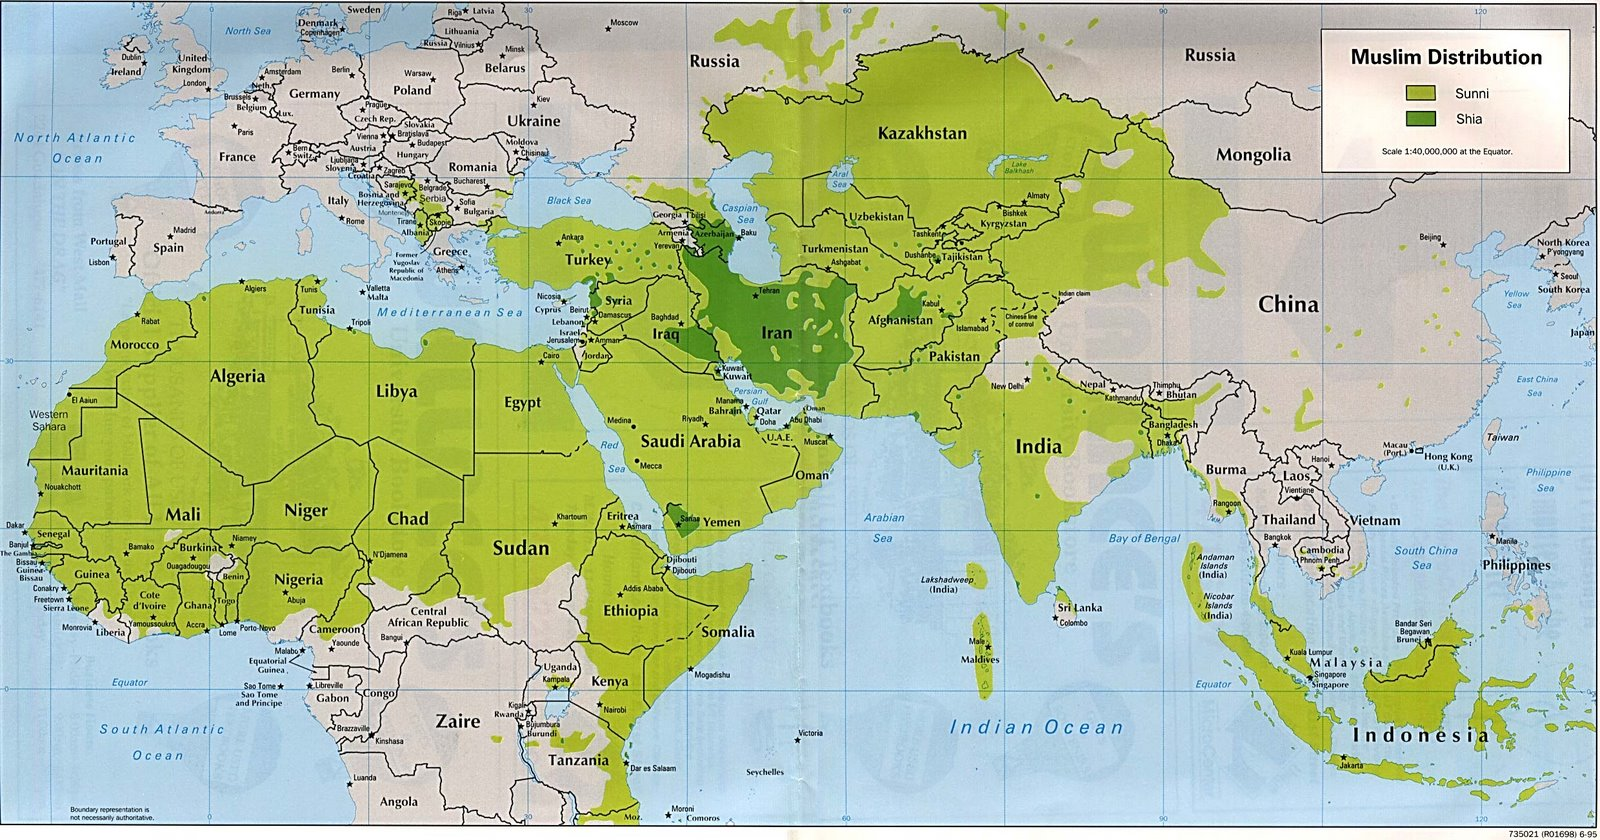 map-muslim-distribution-sunni-ao2